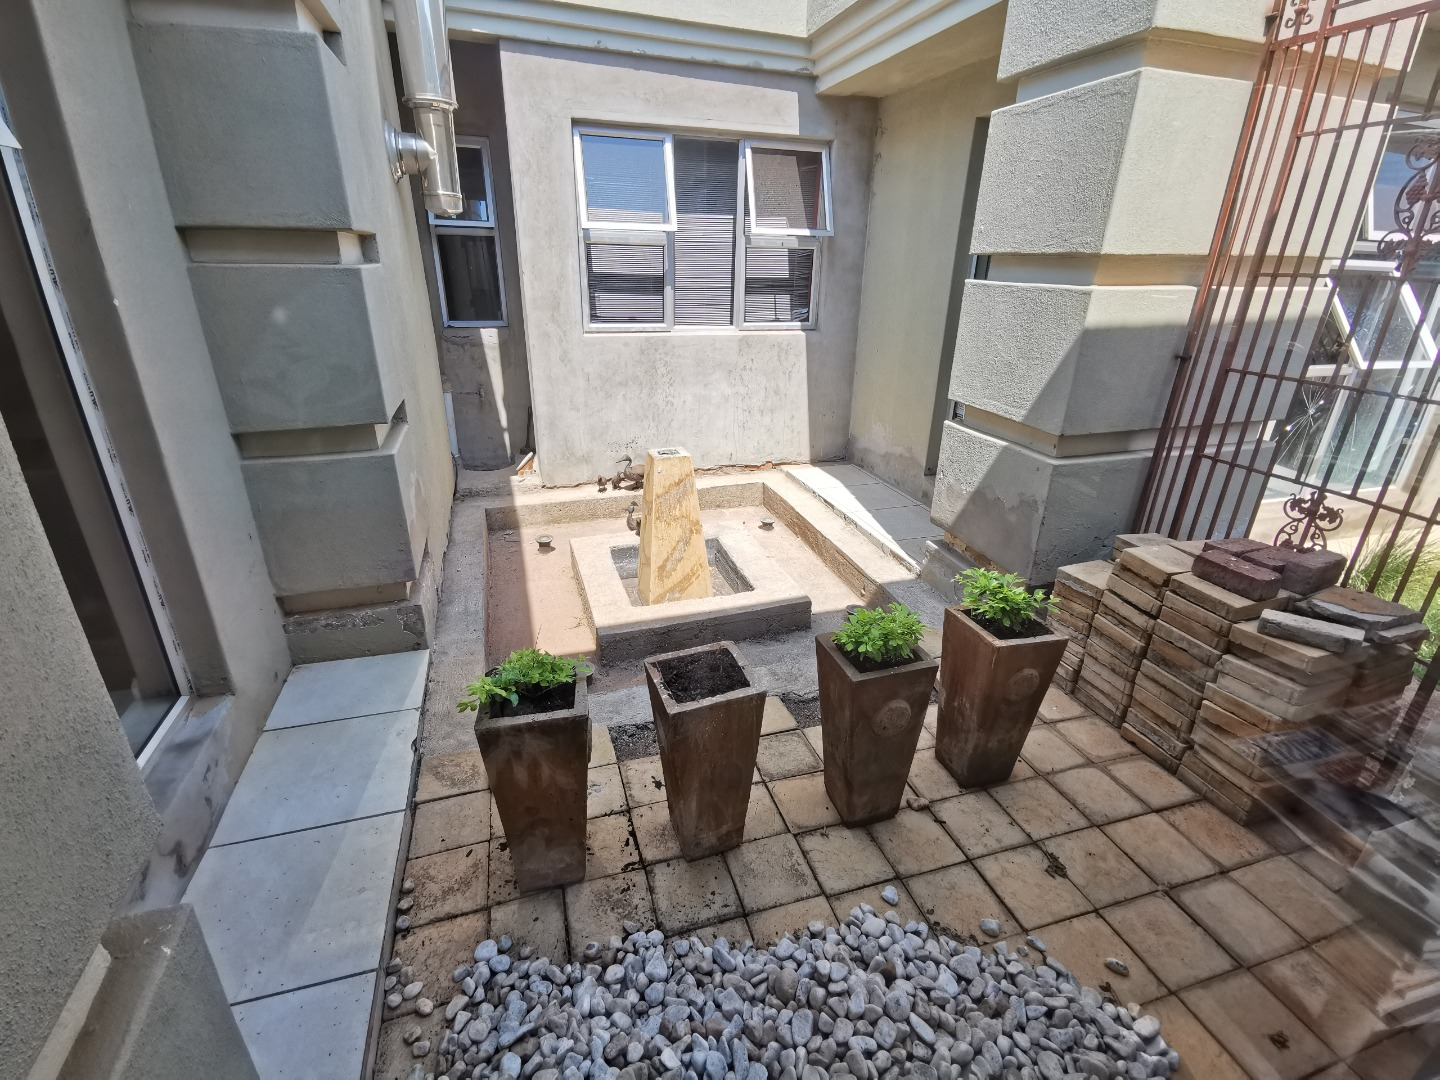 5 Bedroom House For Sale in Chroompark